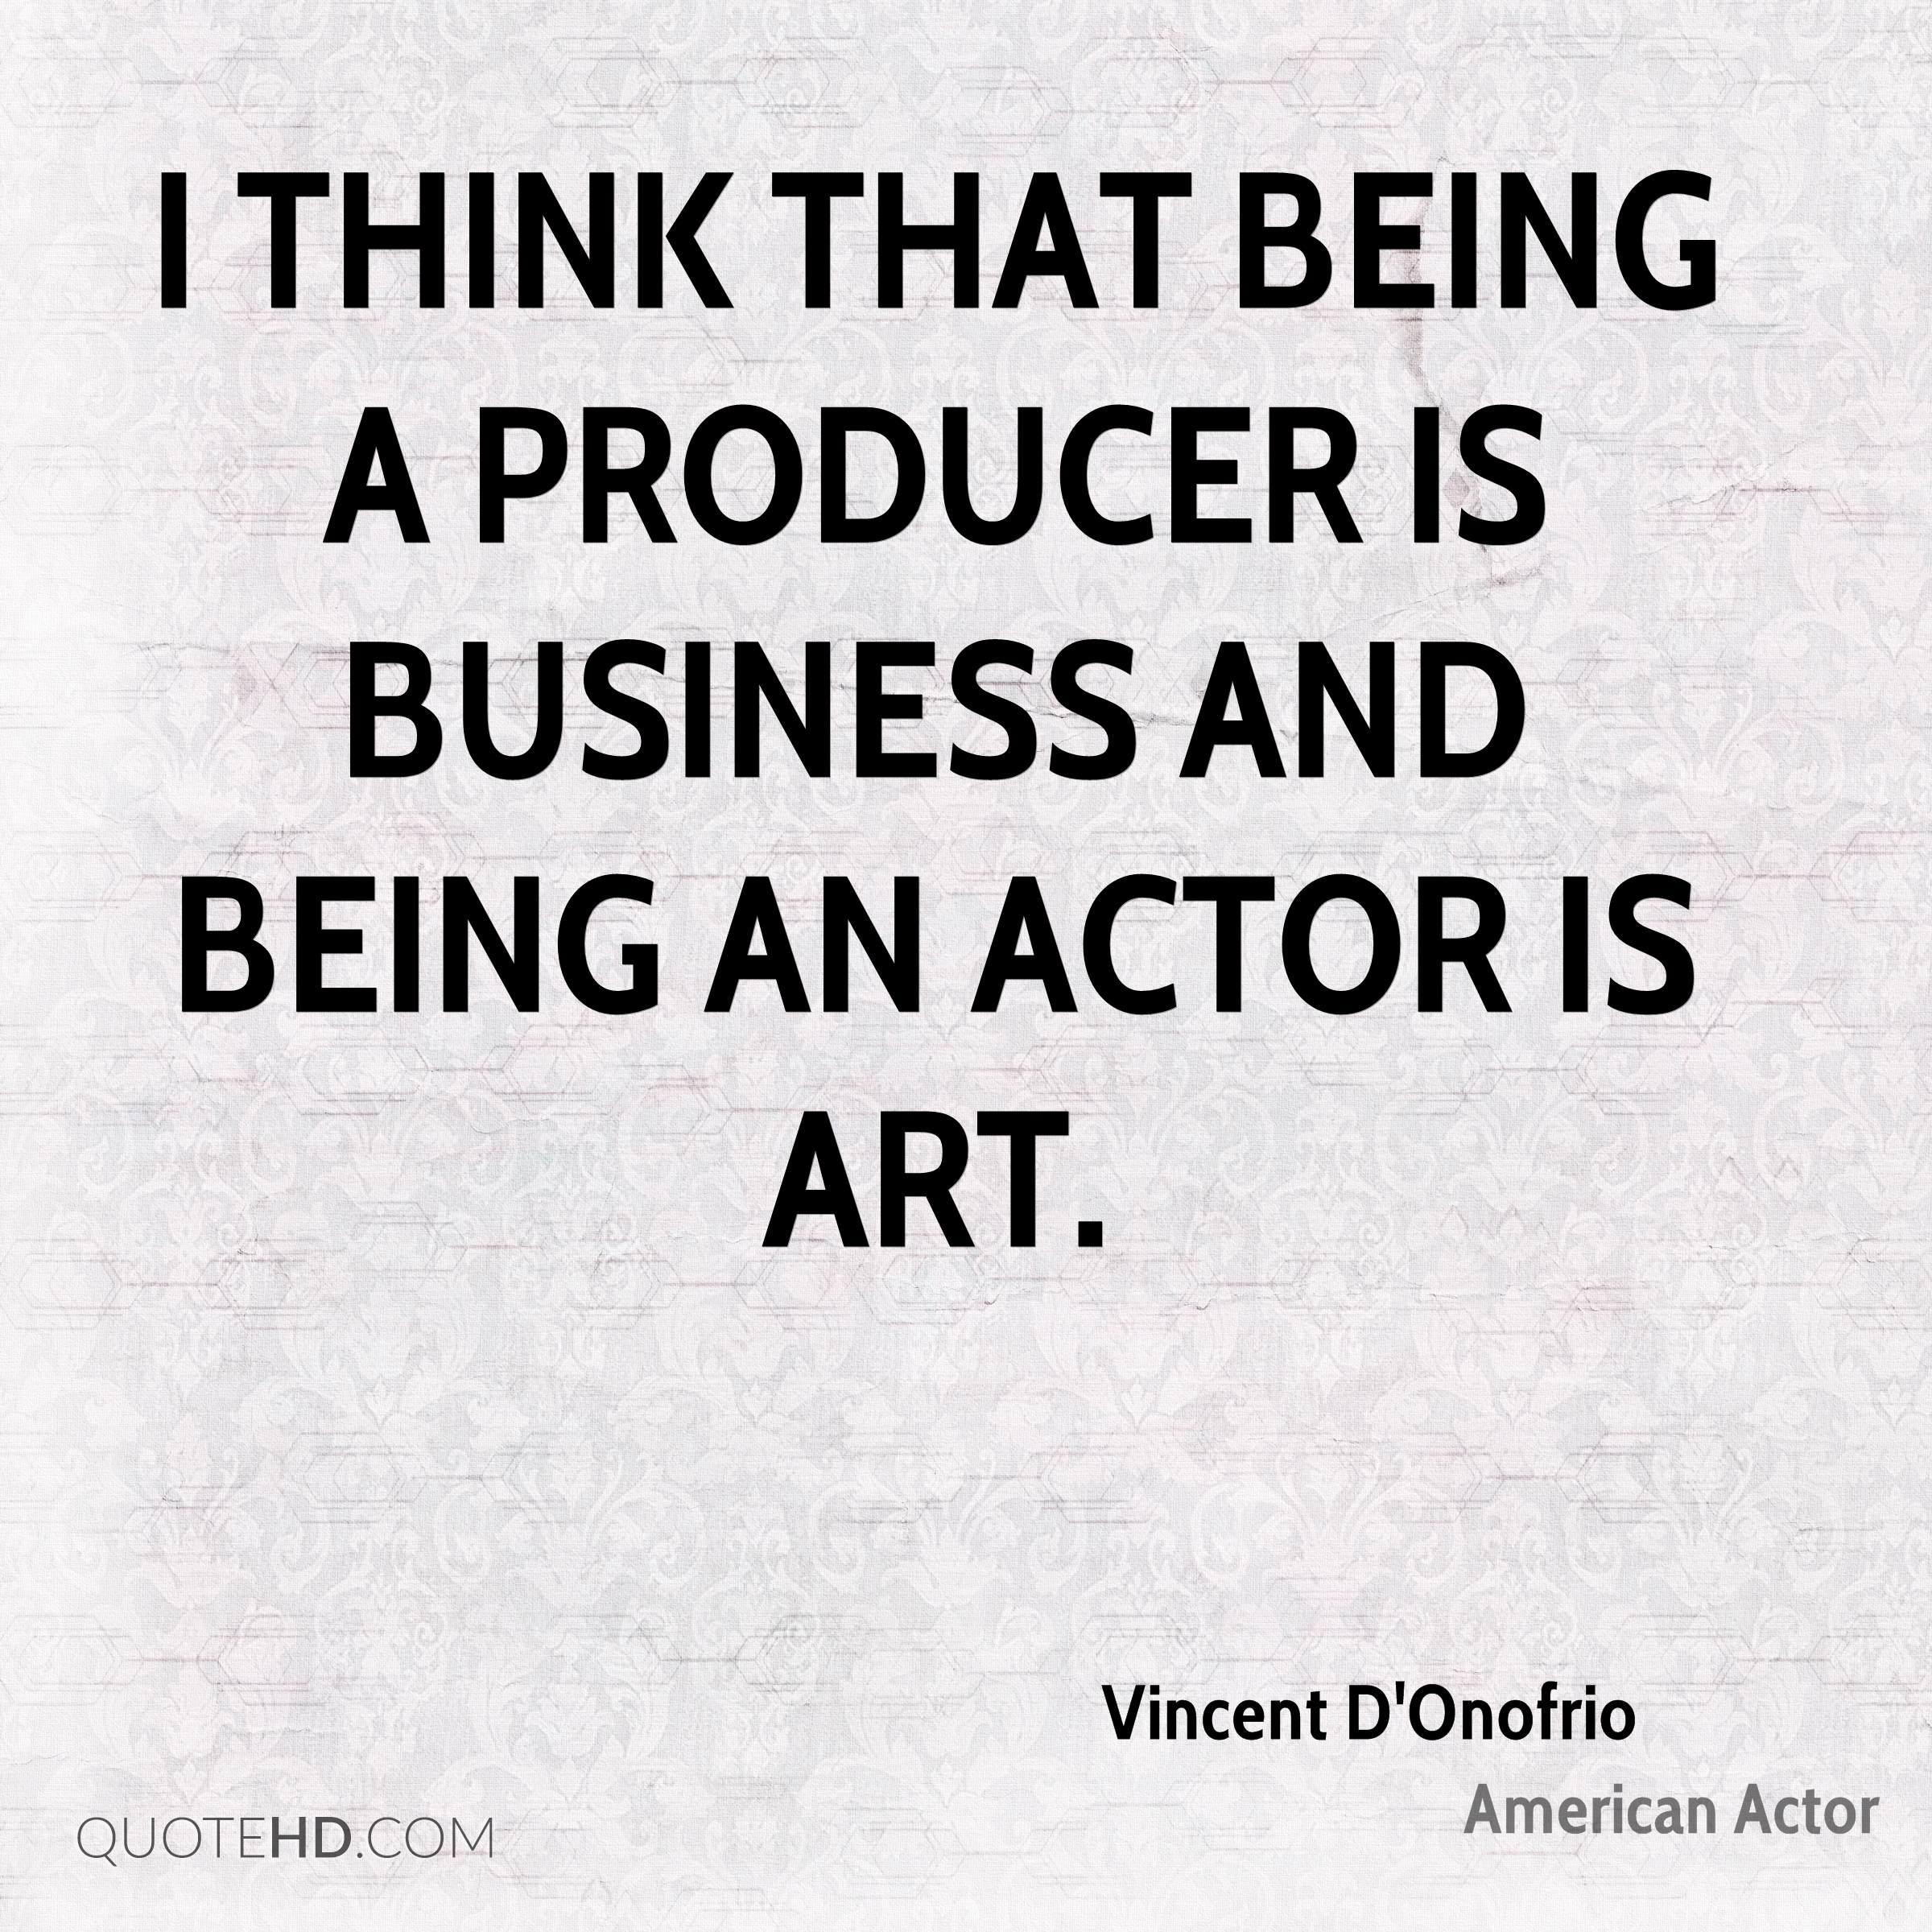 I think that being a producer is business and being an actor is art.